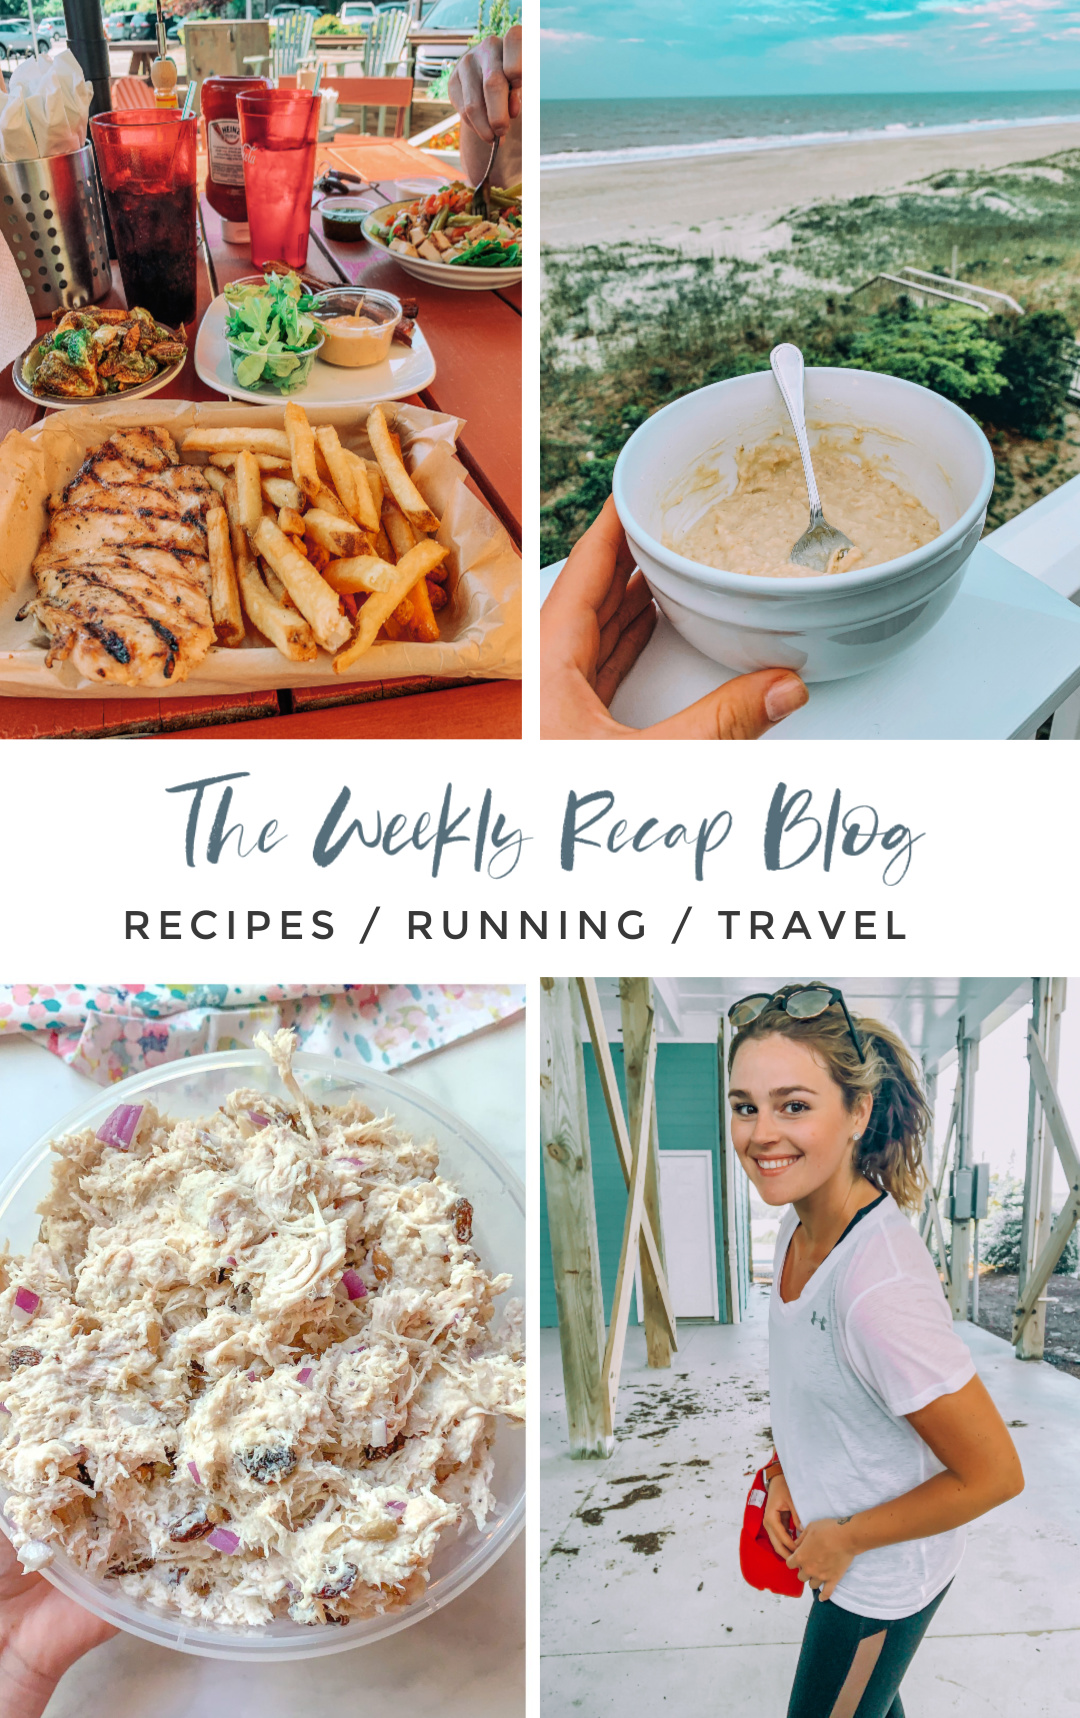 the weekly recap blog, tennis, running, fitness, simply taralynn, weight loss, Charlotte, rock hill, blogging, oatmeal, healthy lifestyle, food, chicken Salak, gluten free, dairy free,